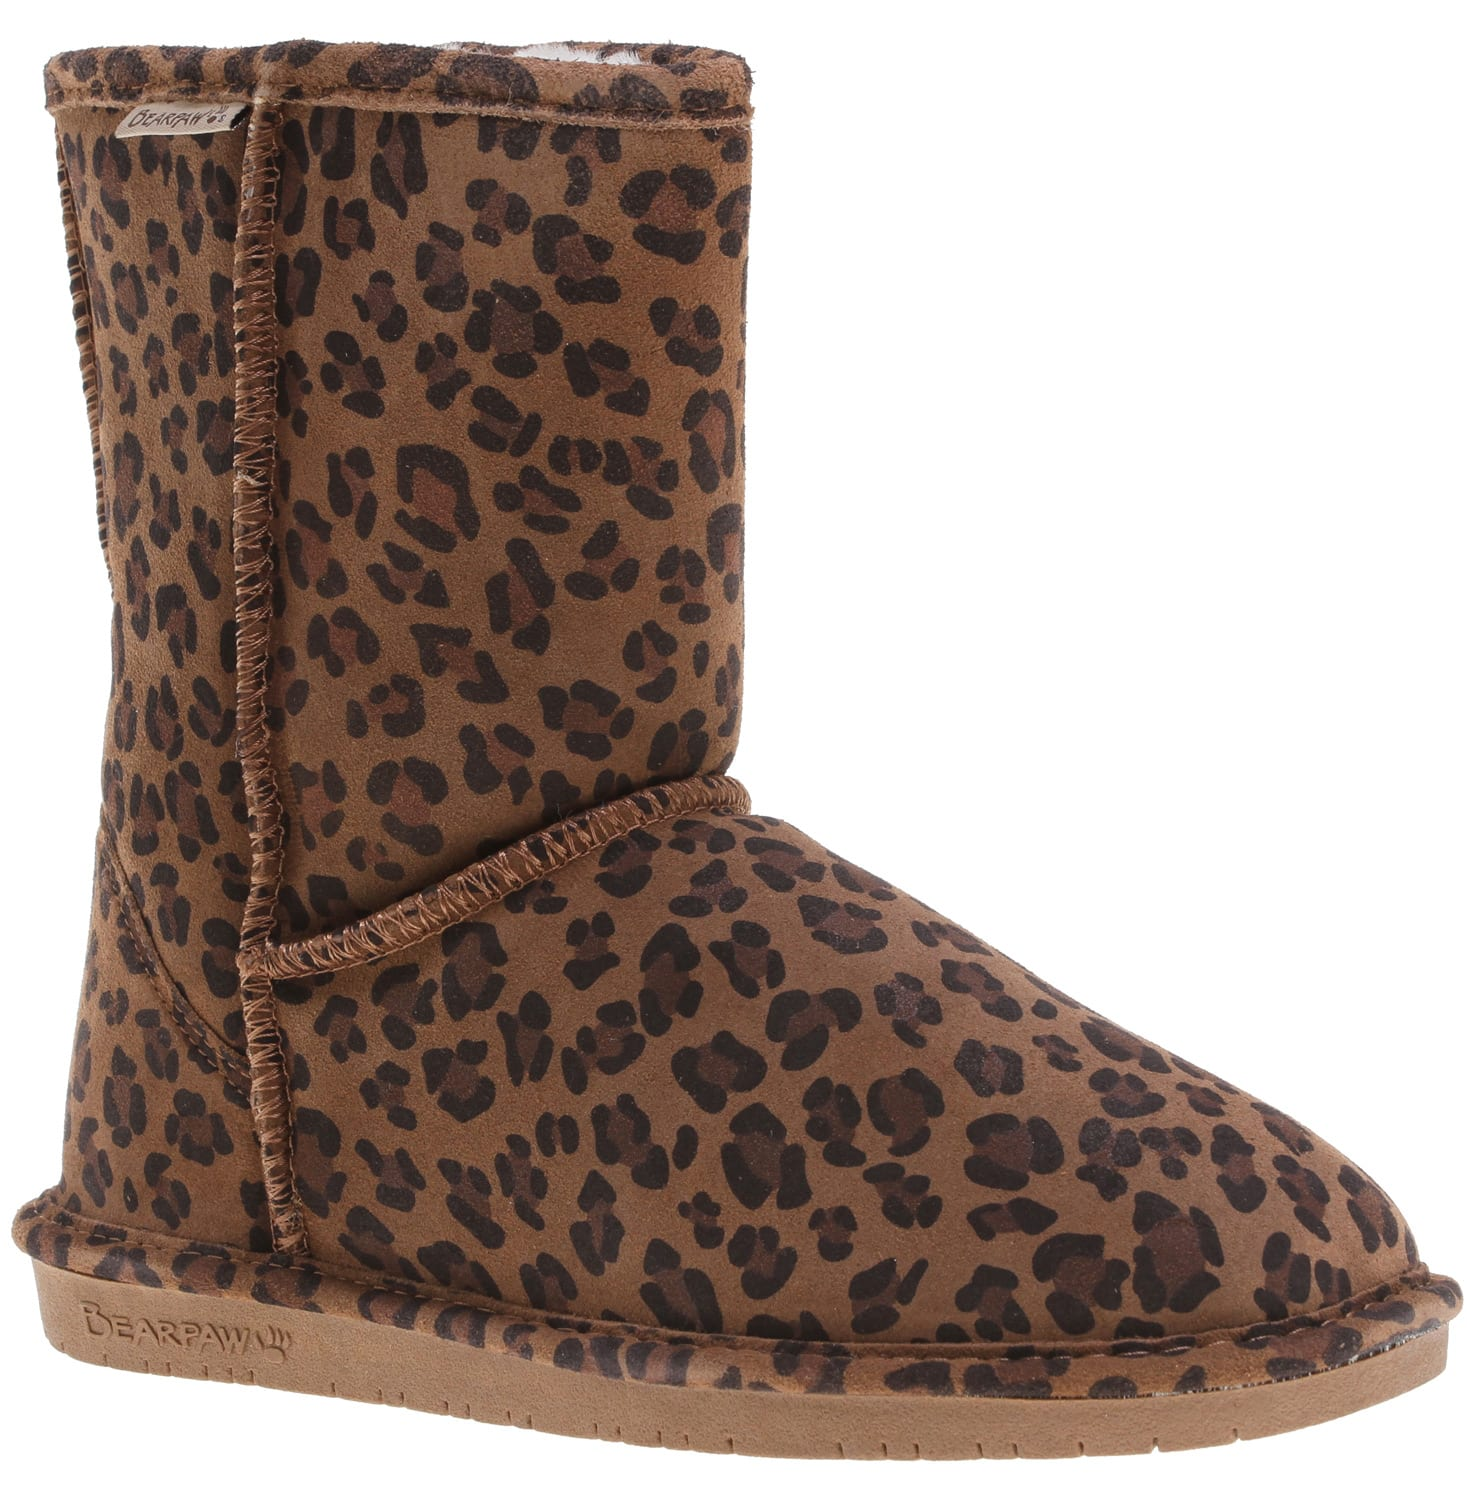 Bearpaw Girl's Belle Youth Snow Boots Black Suede Sheepskin 2 Little Kid M. Average rating: out of 5 stars, based on reviews. New $ Bearpaw Eva Short Round Toe Suede Winter Boot. Average rating: out of 5 stars, based on reviews. Reduced Price. from $ 5/5(2).